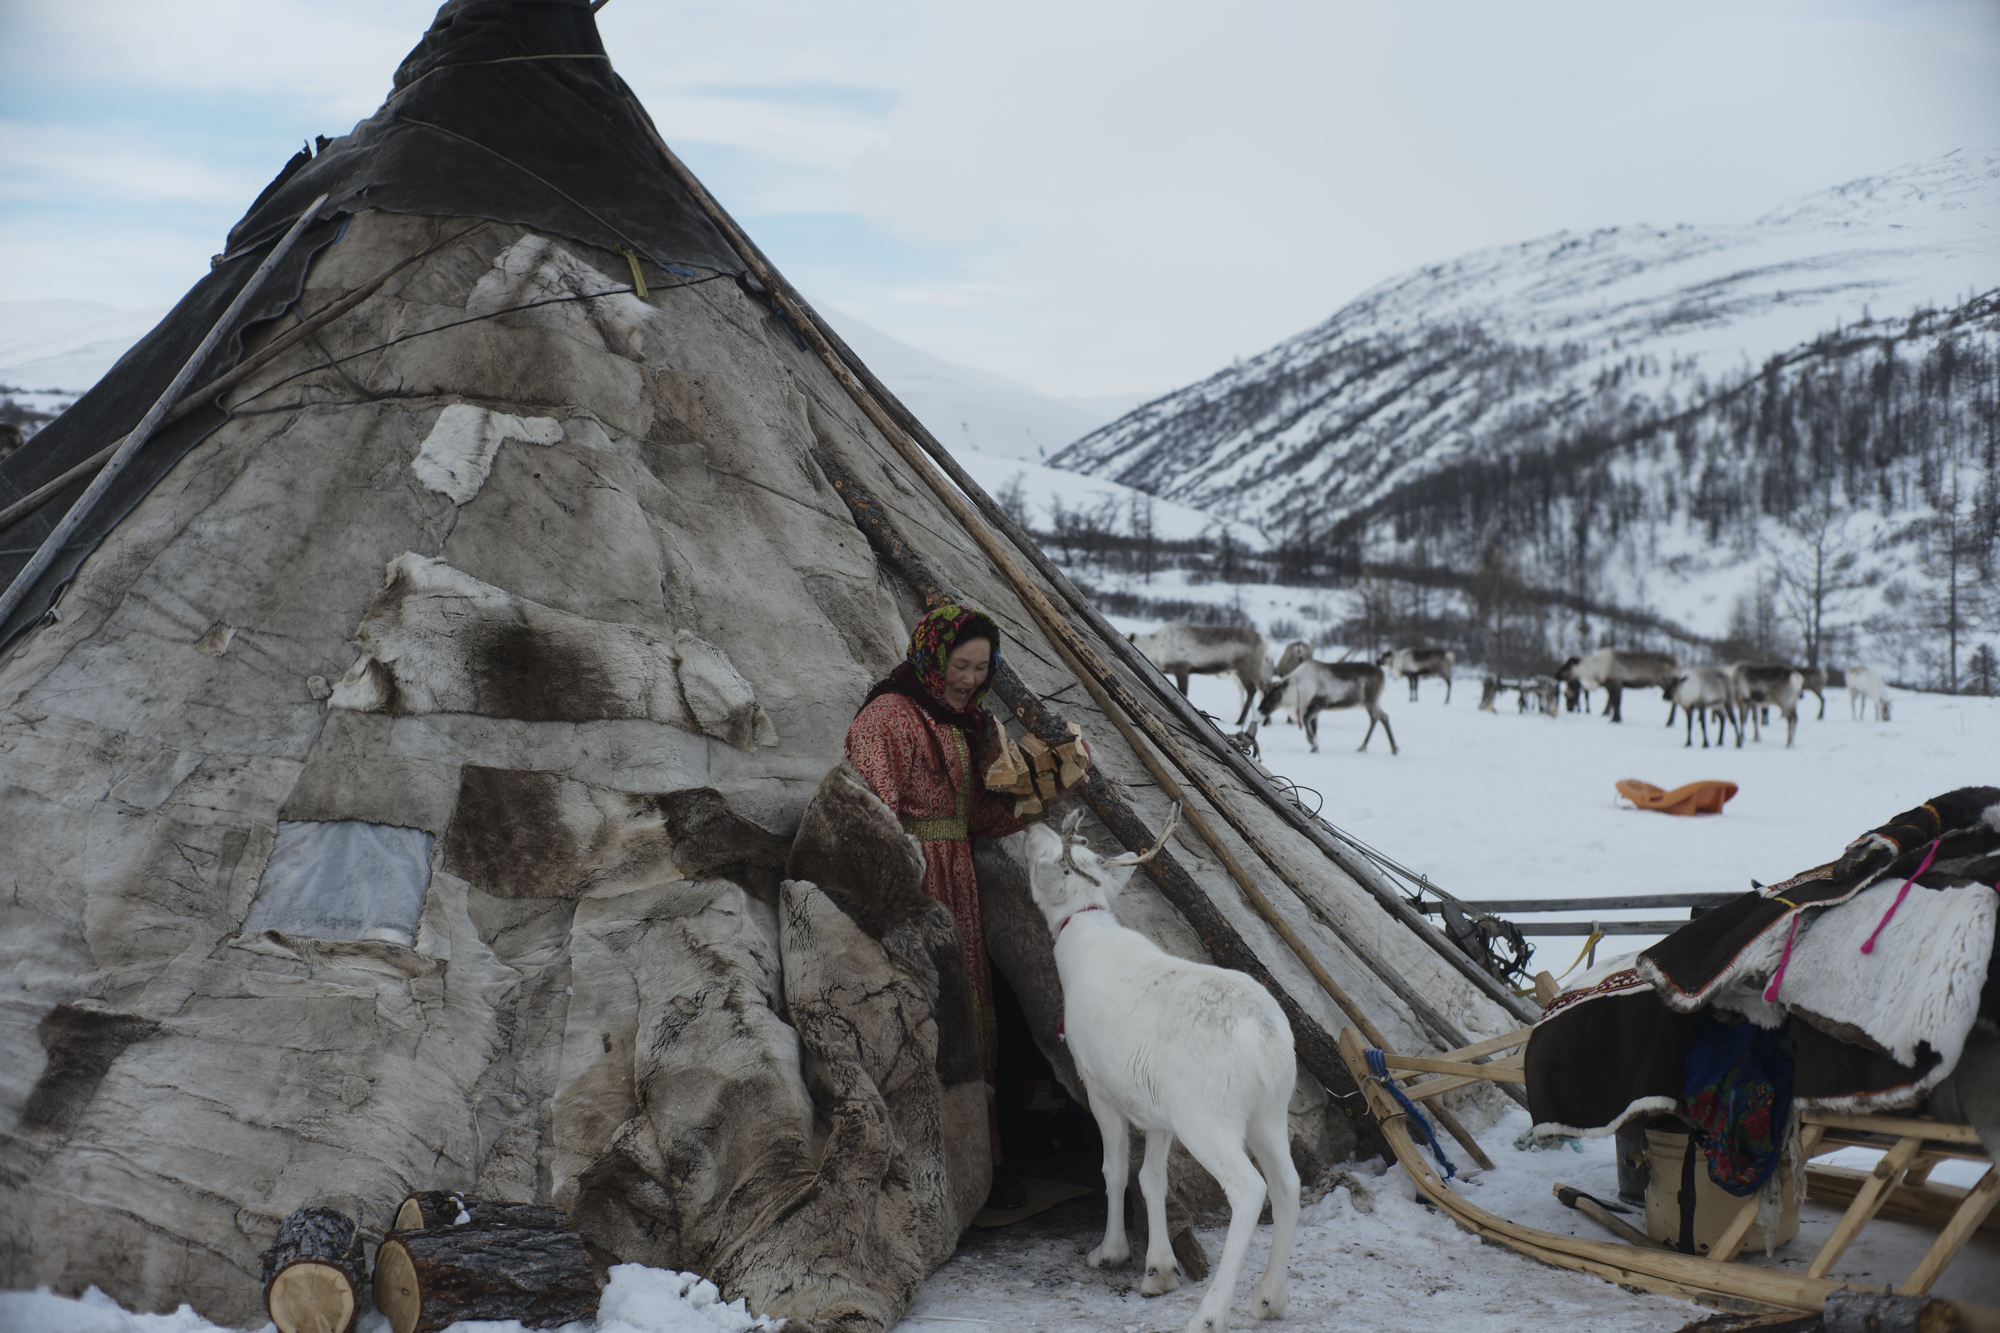 The Nenets reindeer herder, Svetlana, with her white pet reindeer outside the chum (tent). Photographed with Leica Q2, Siberia, 2019.  ©  Rosalynn Tay.